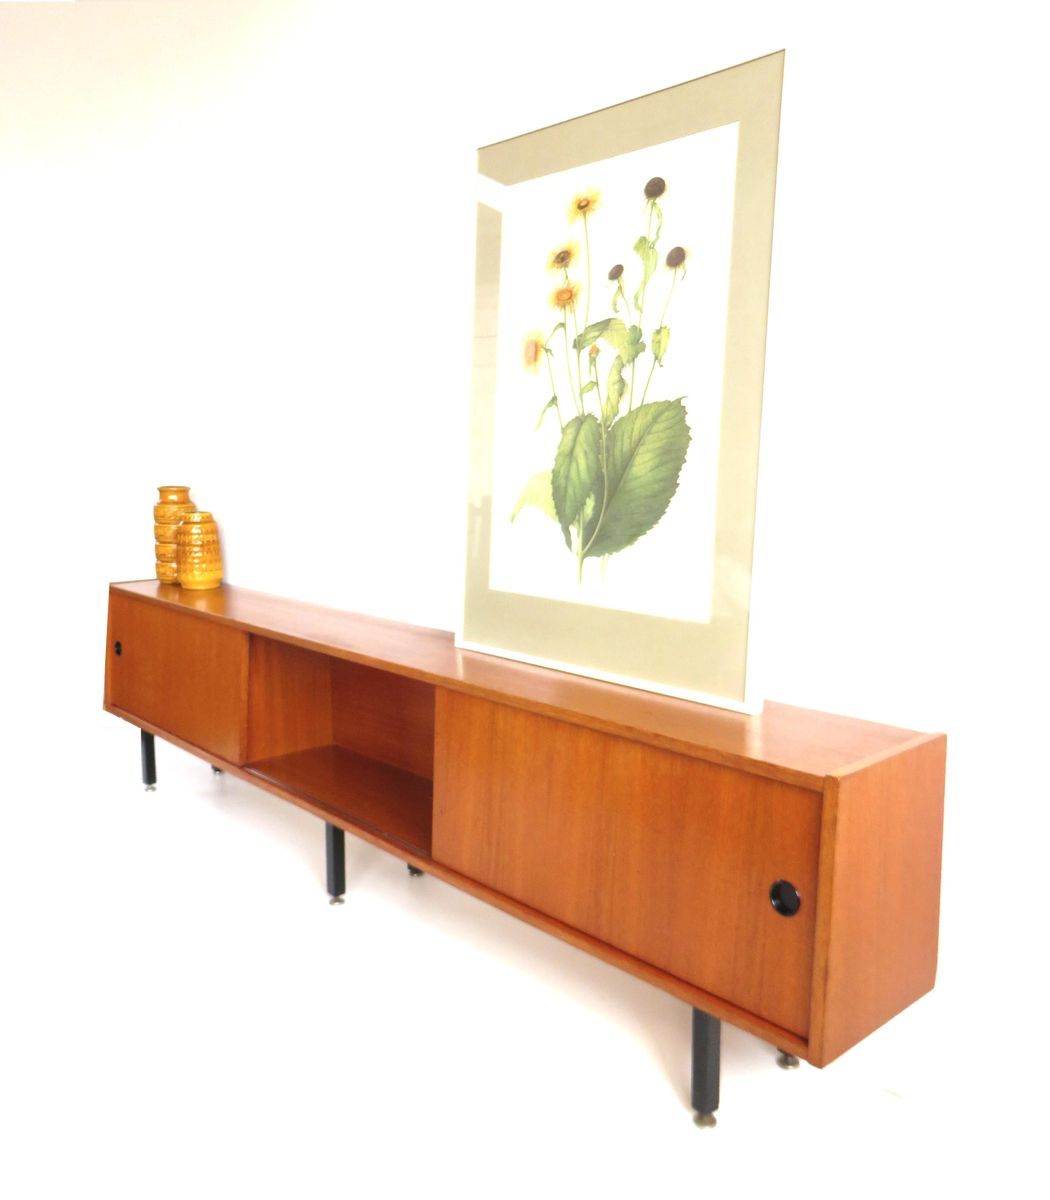 Vintage Lowboard With Sliding Doors 1960s For Sale At Pamono - Retro Lowboard